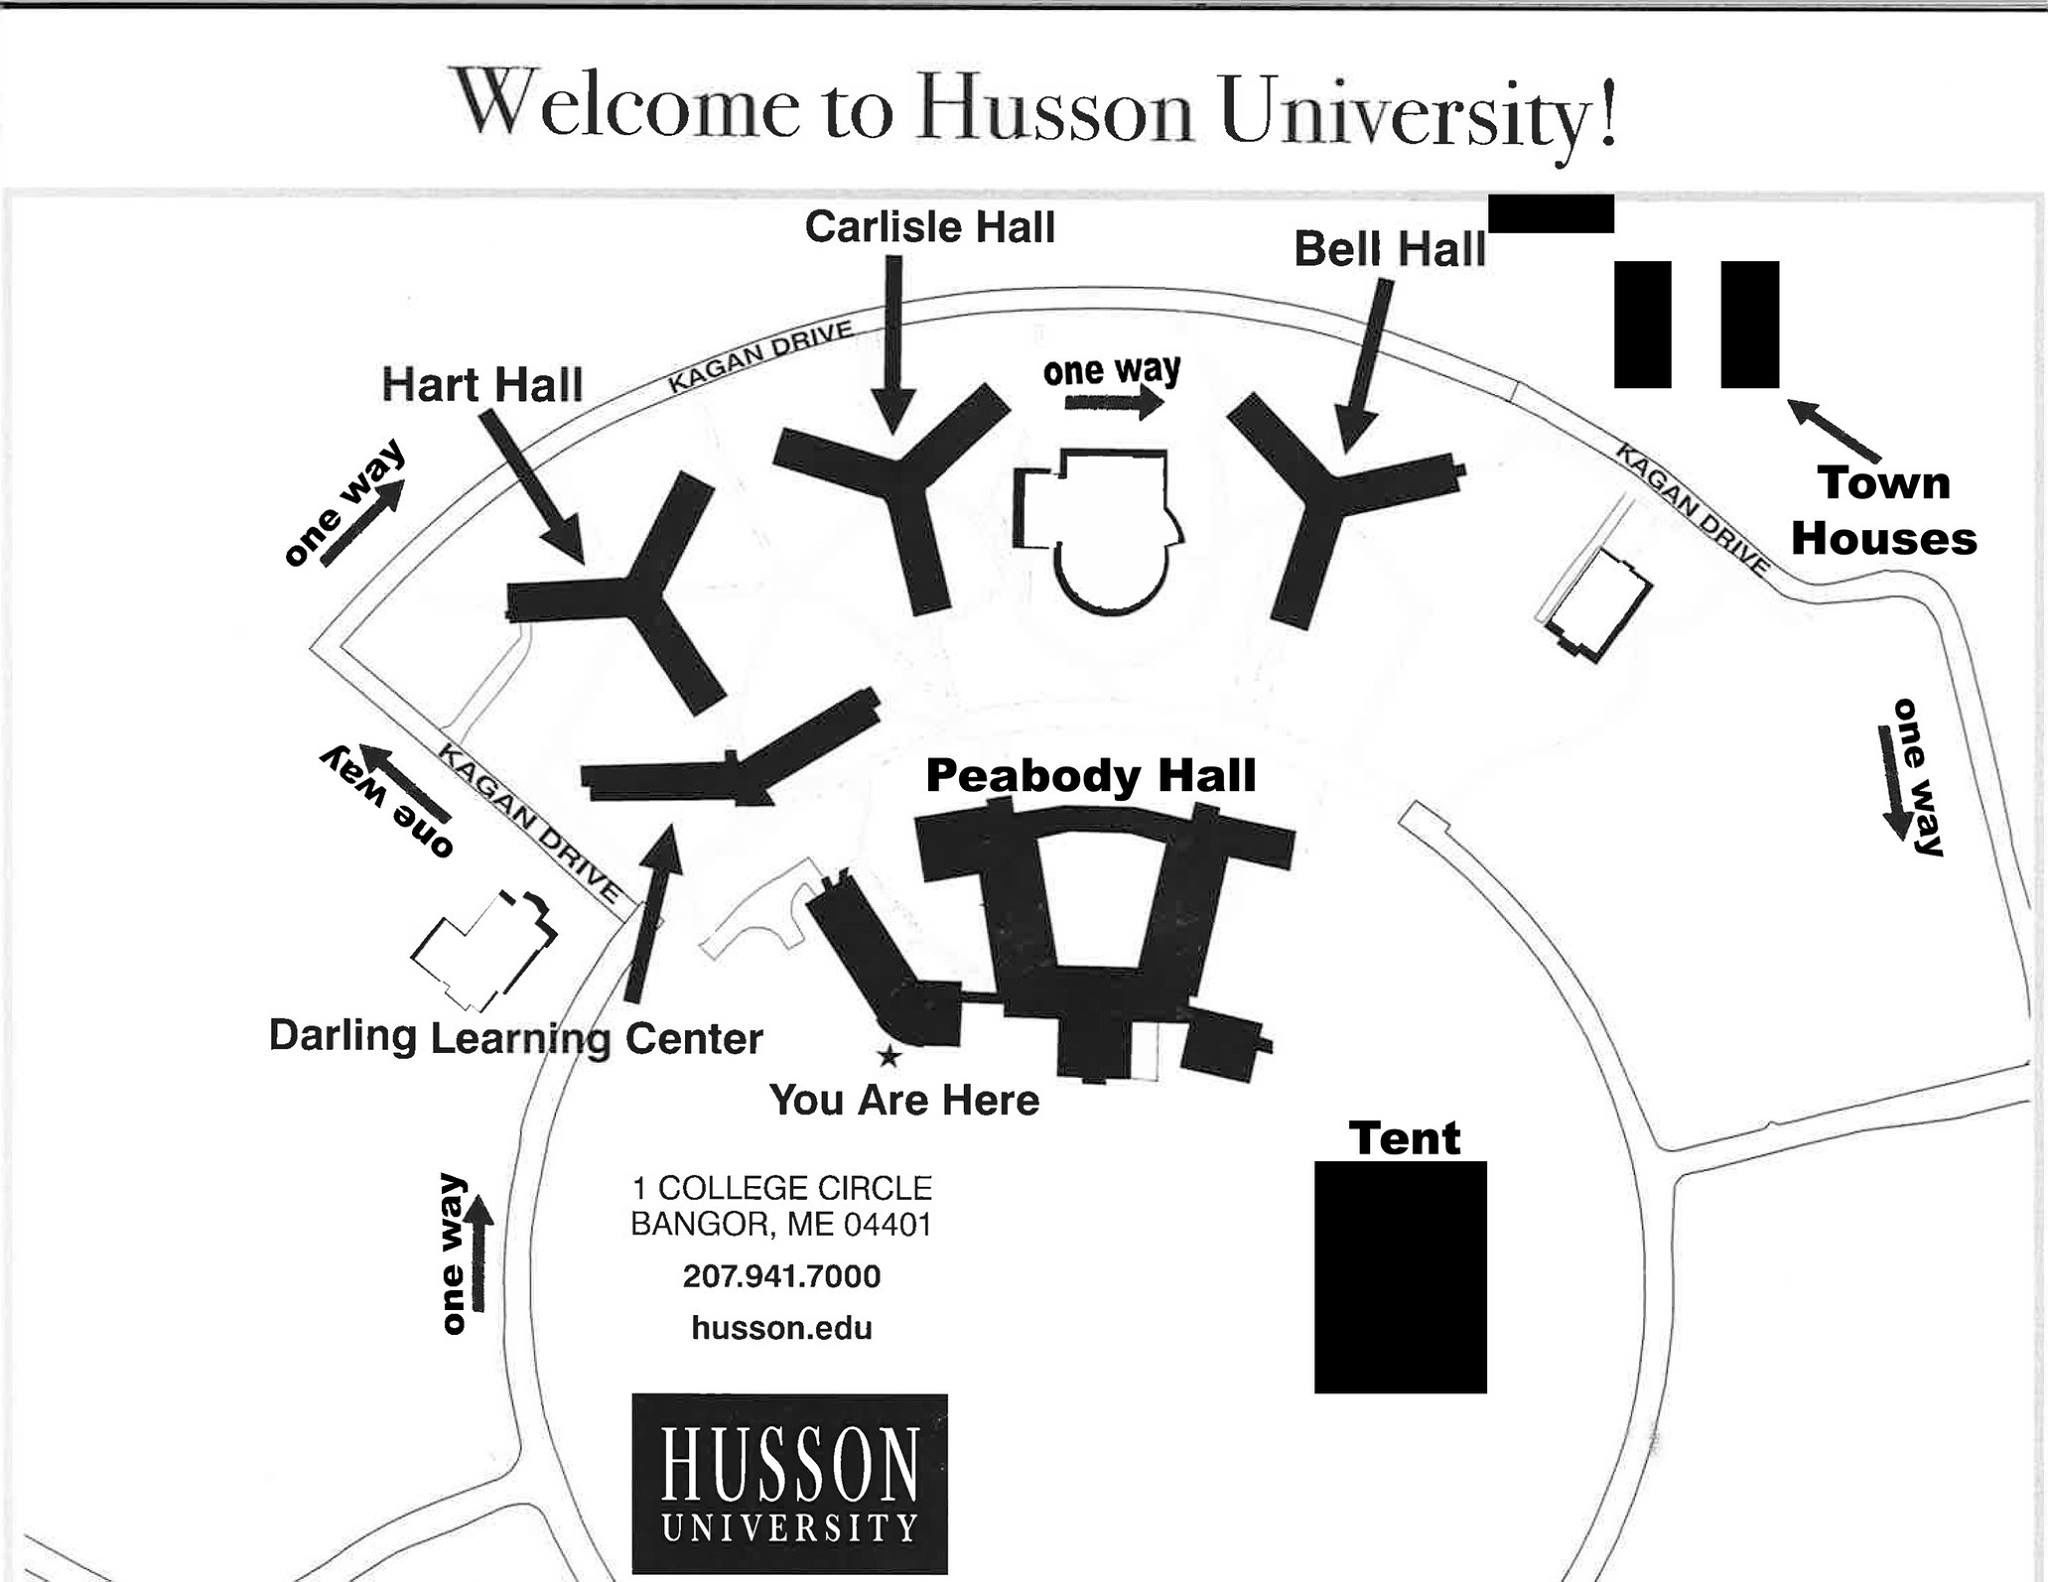 Pin By Jill Smith On Husson University